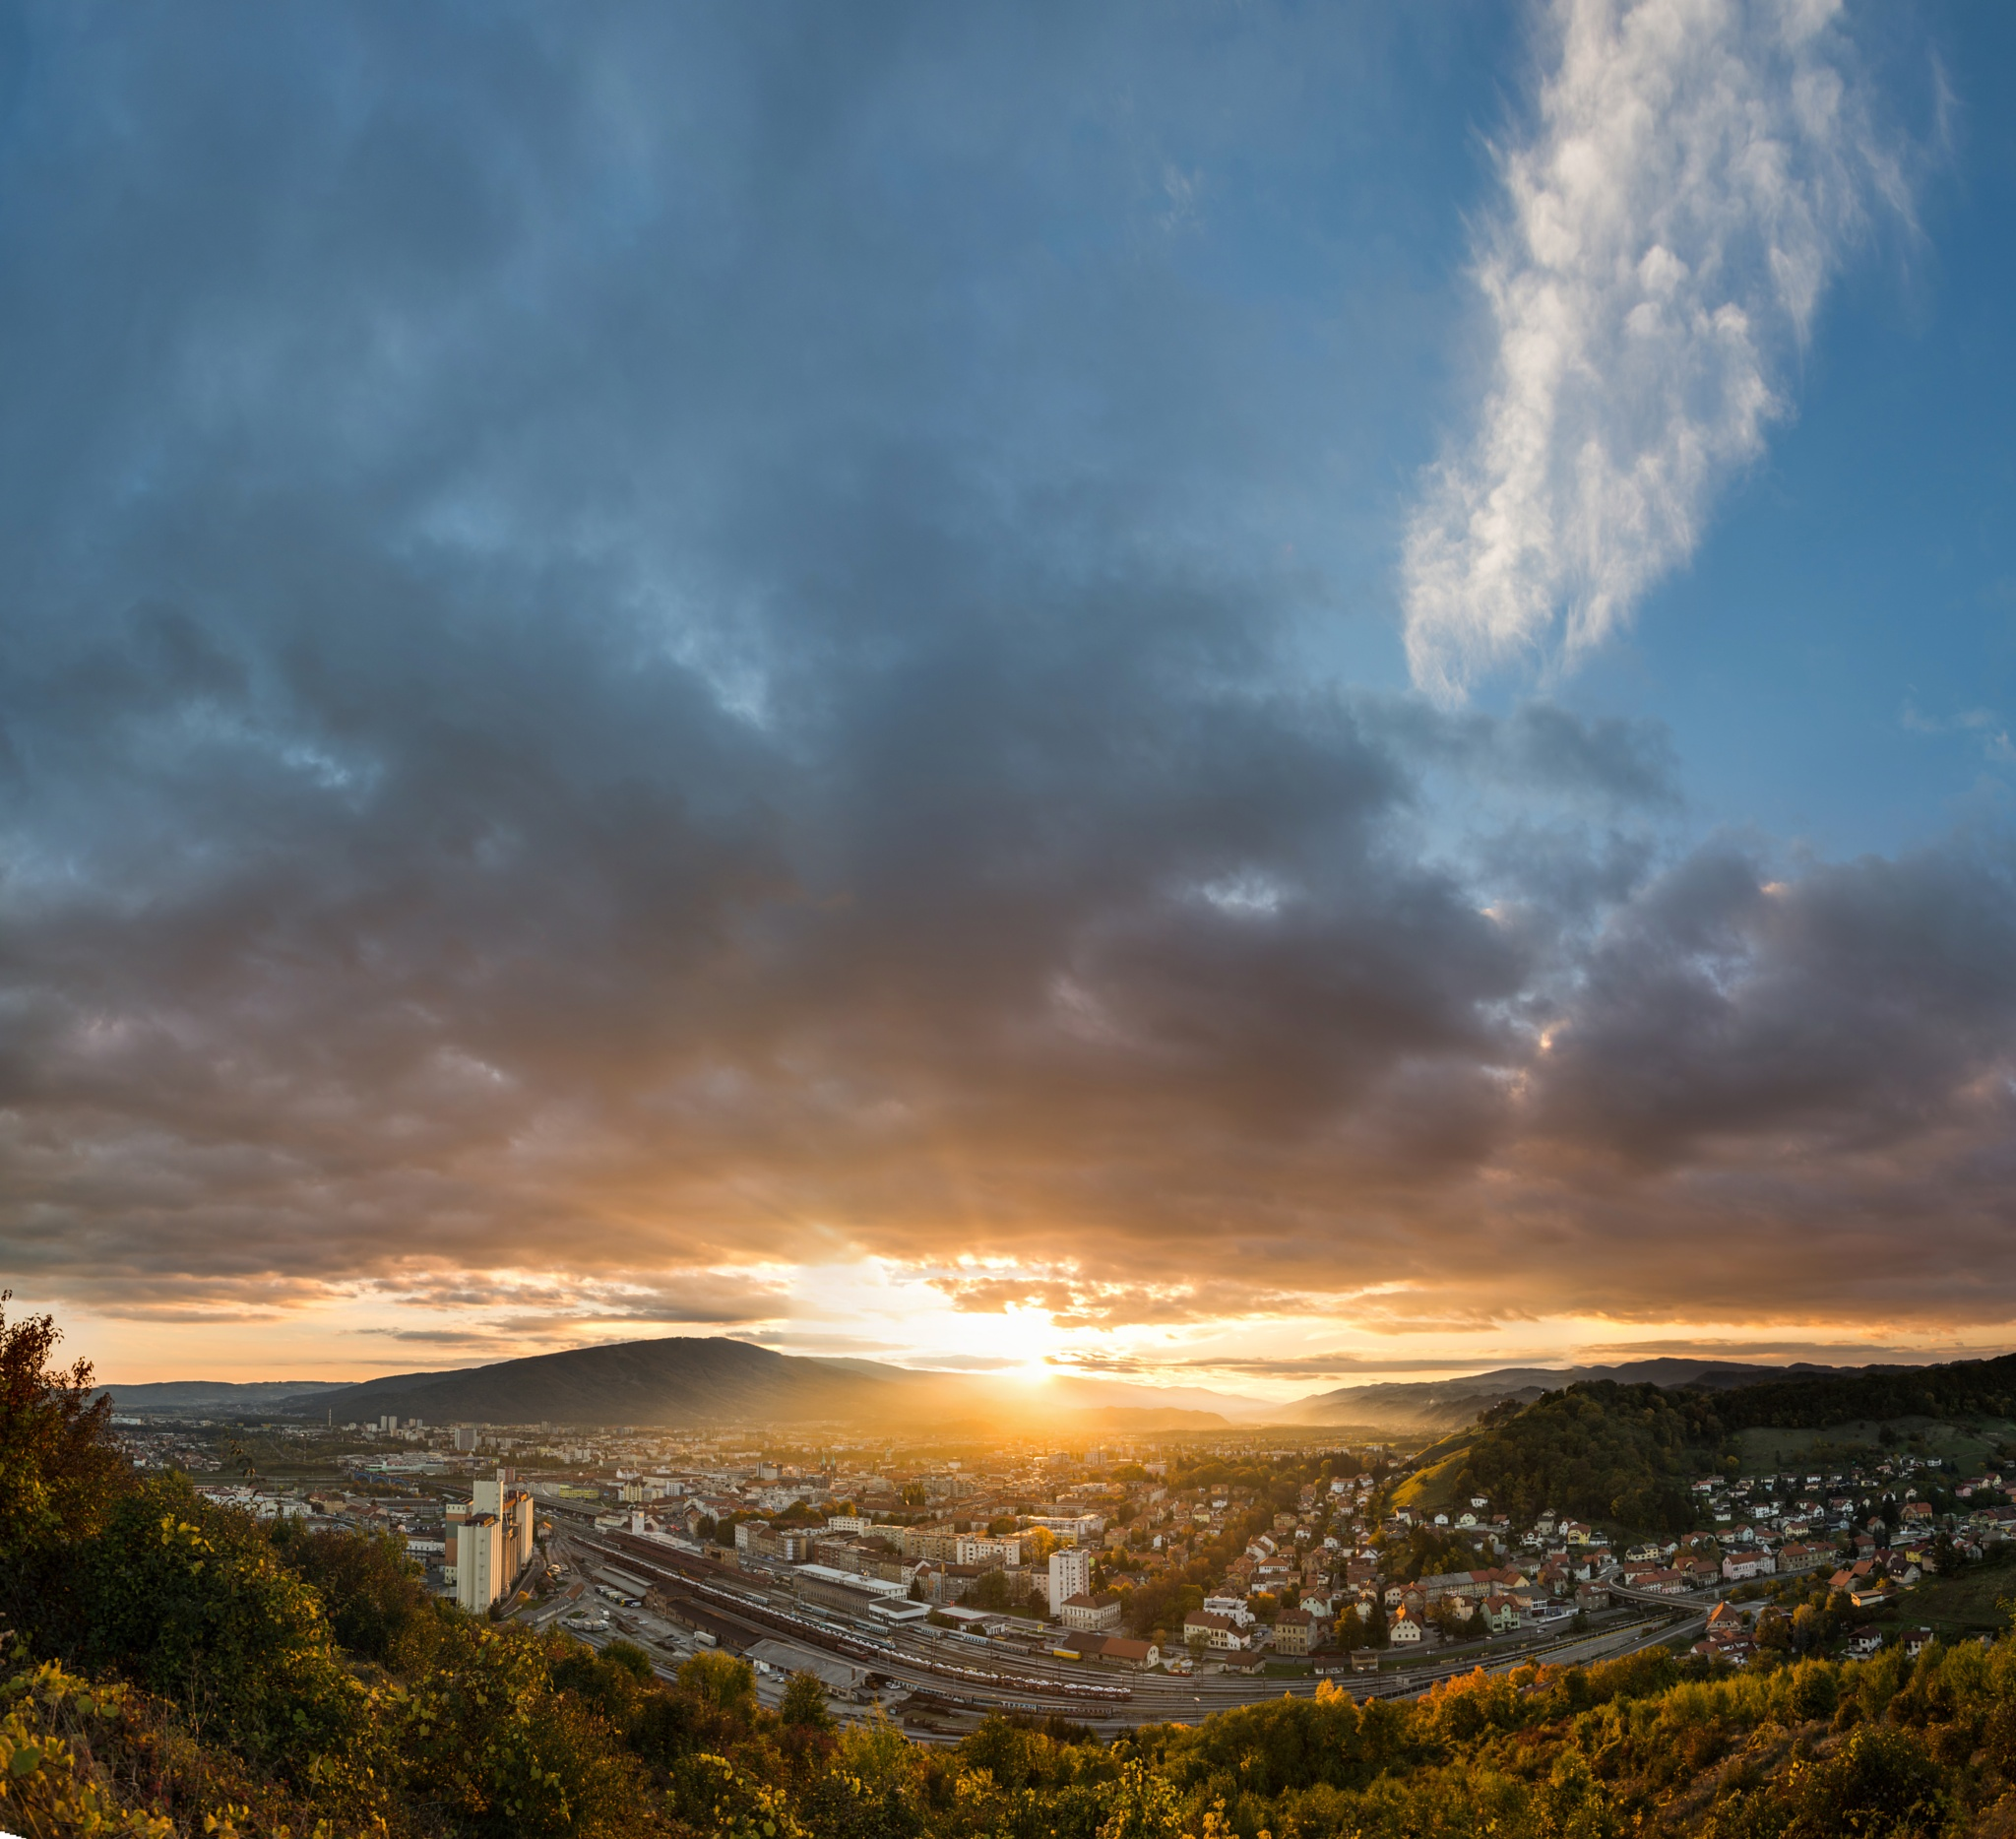 Maribor at sunset by jure kralj